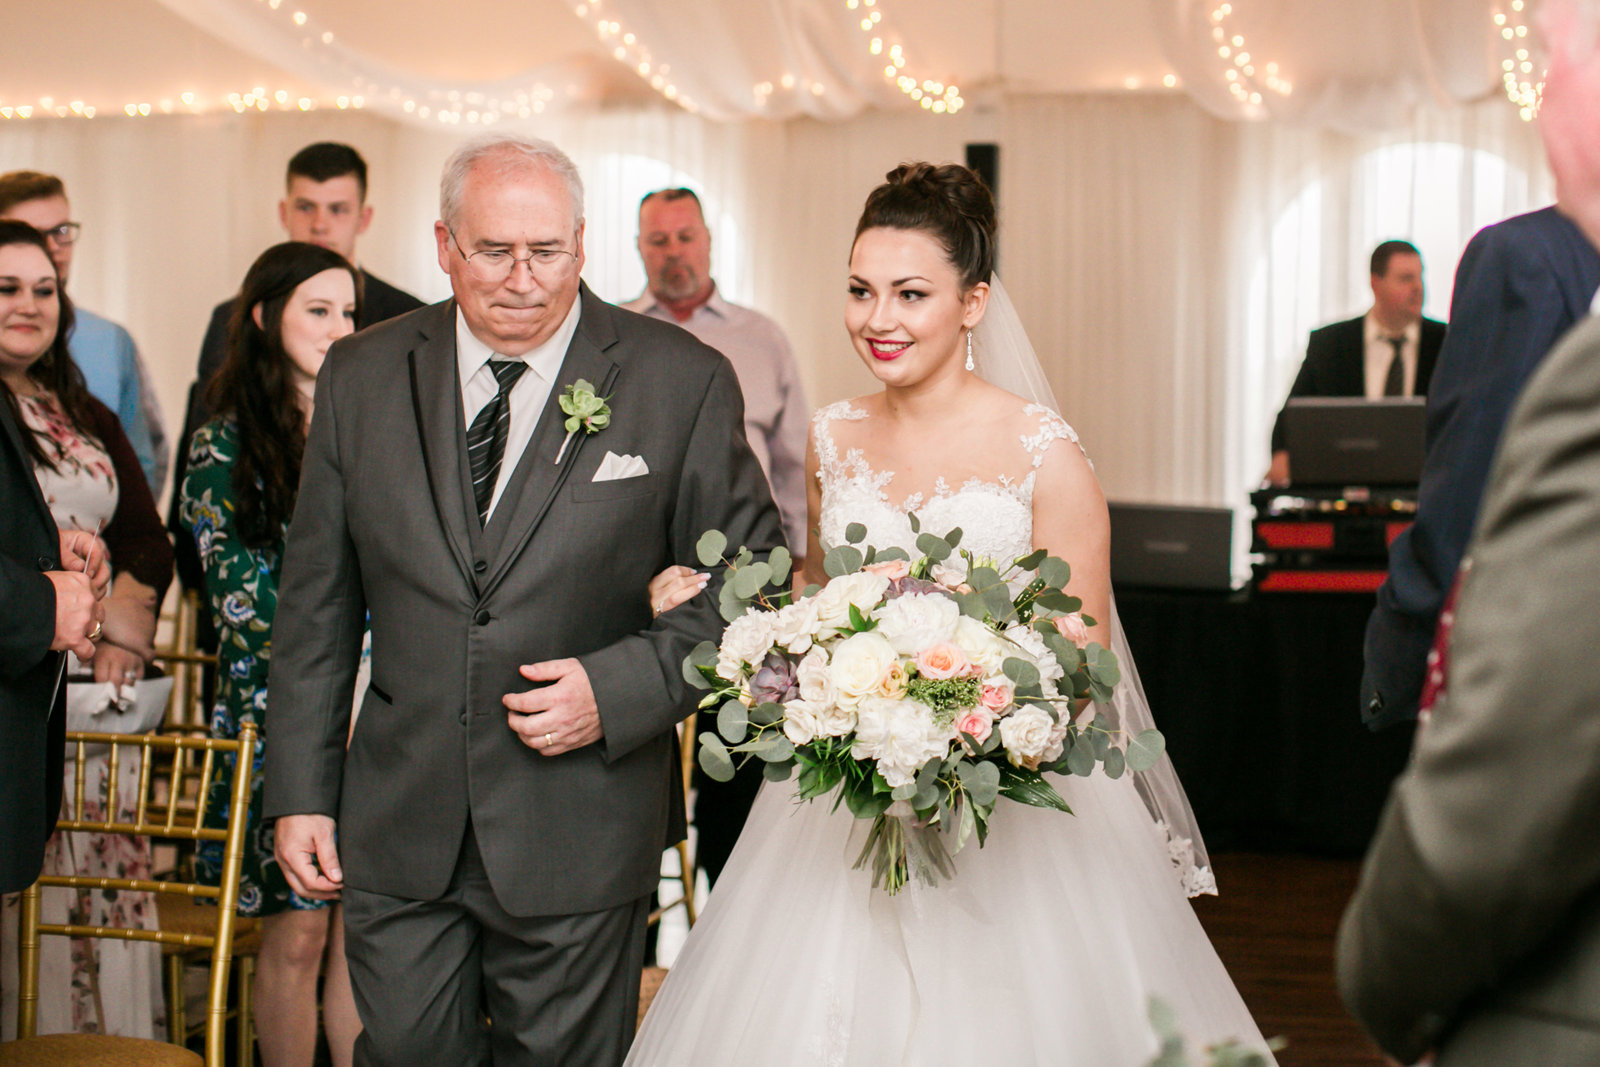 Bristow_Manor_Golf_Club_Wedding_Photographer_Anderson516 copy